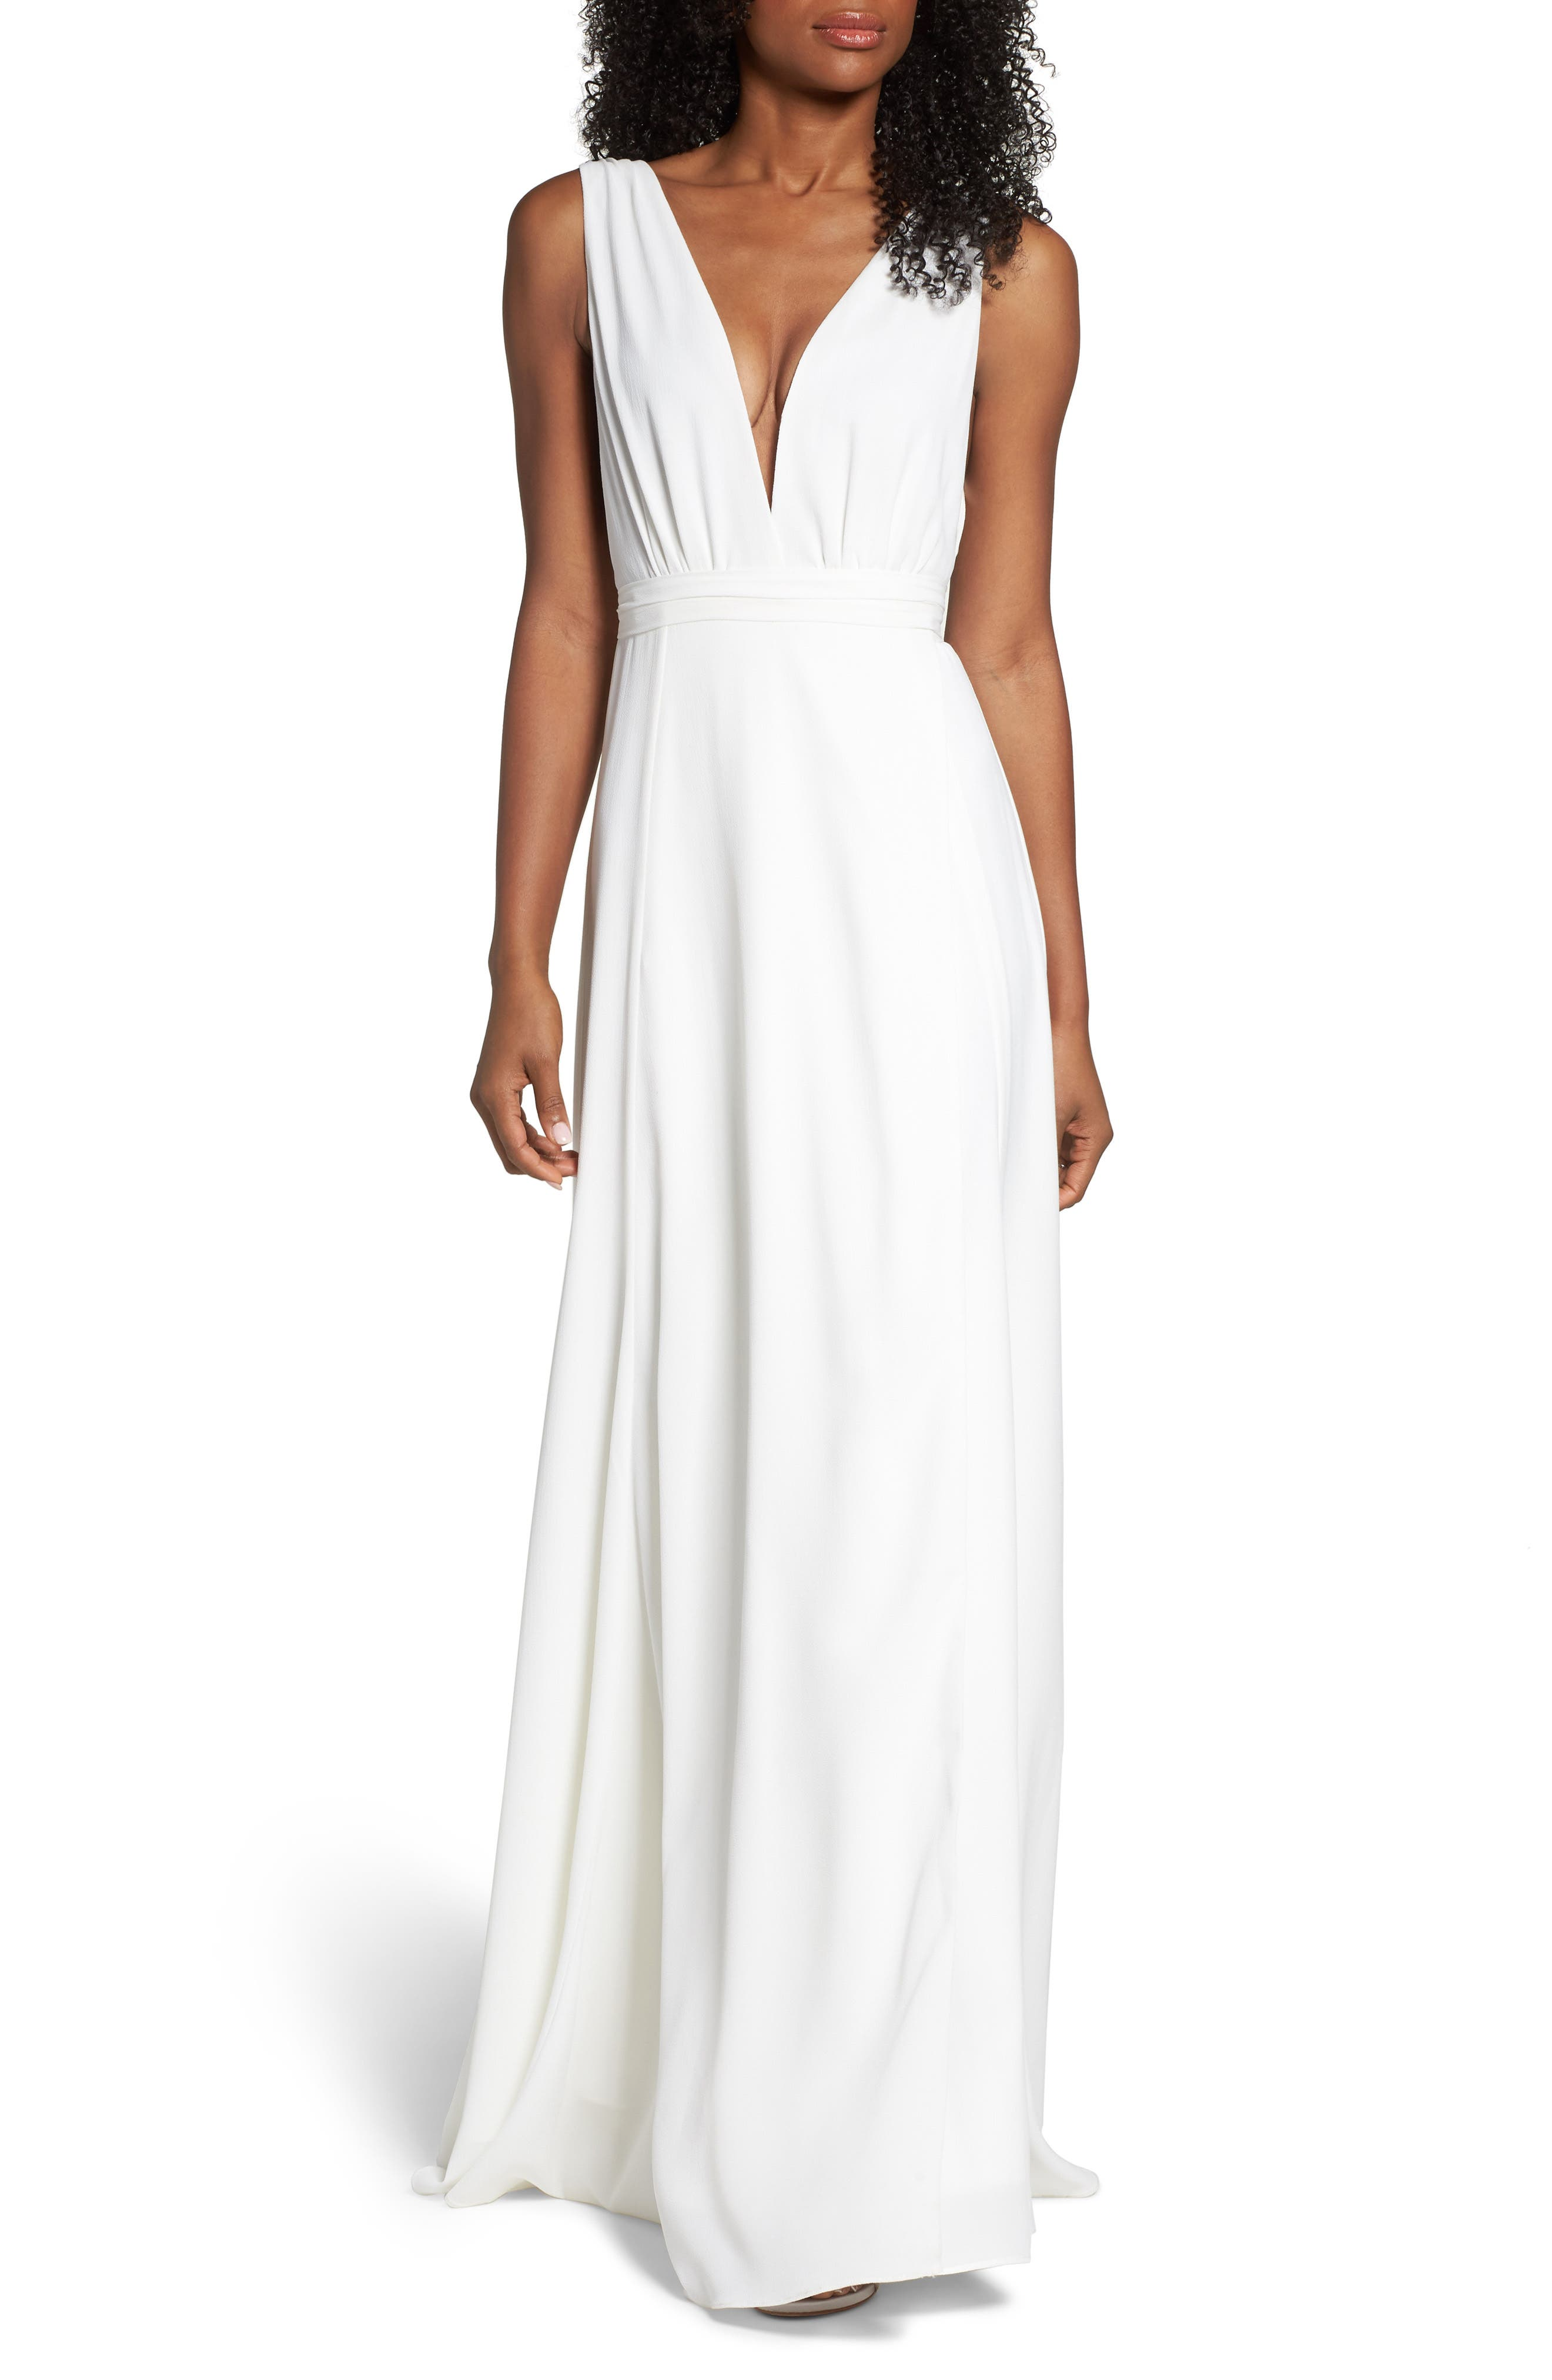 Jagger Plunging Wrap Dress,                         Main,                         color, WHITE